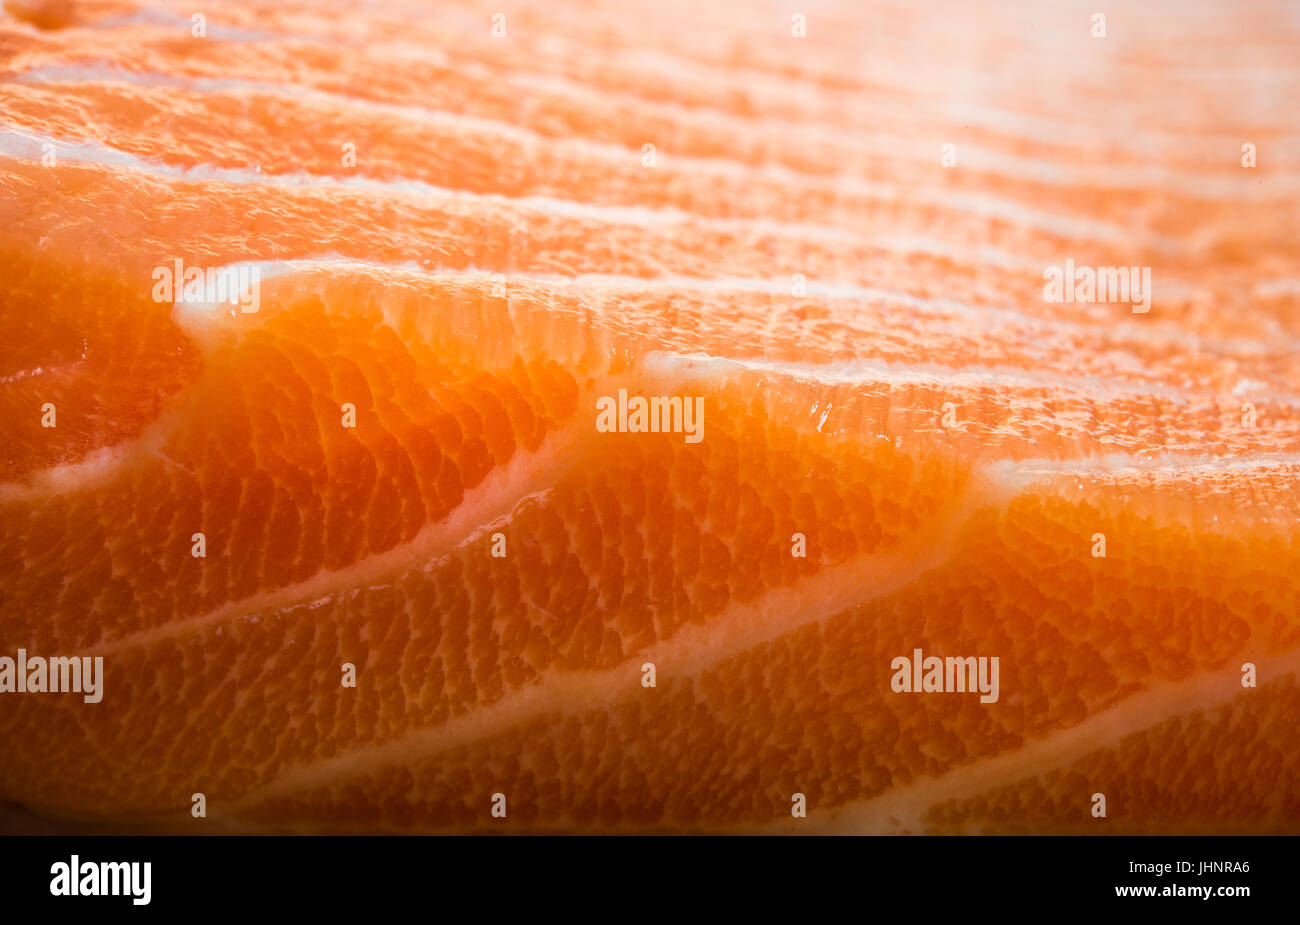 on the photo close up fish fillets salmon - Stock Image